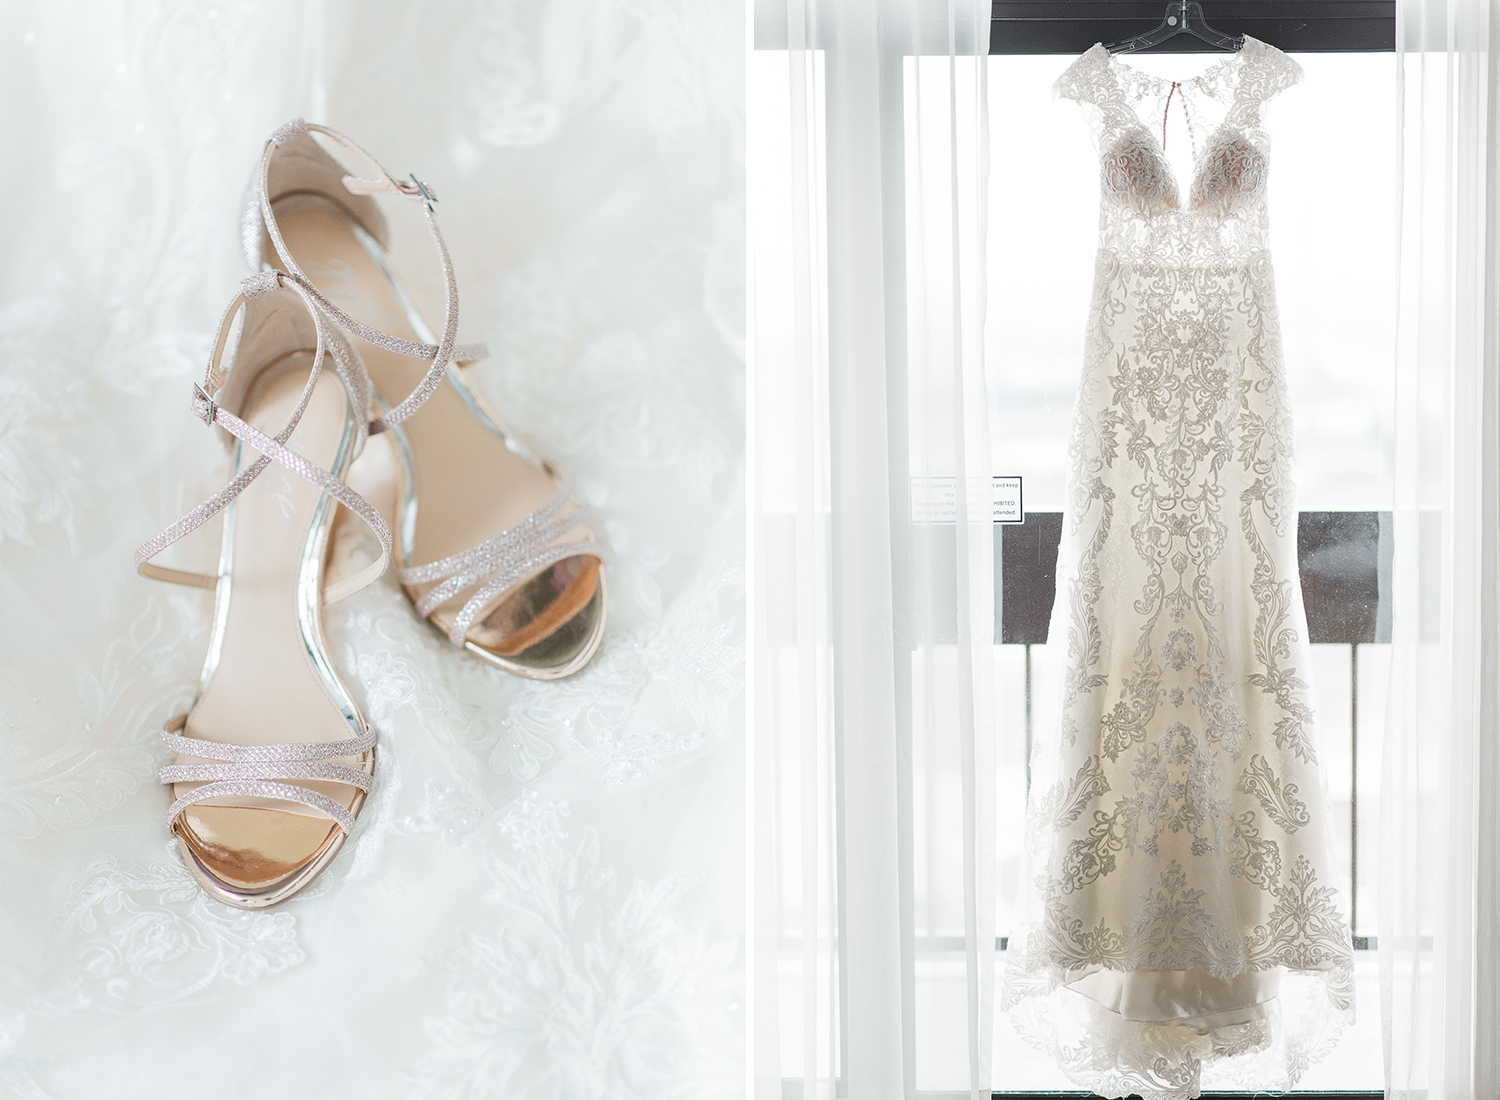 bride getting ready with dress and badgley mishka shoes